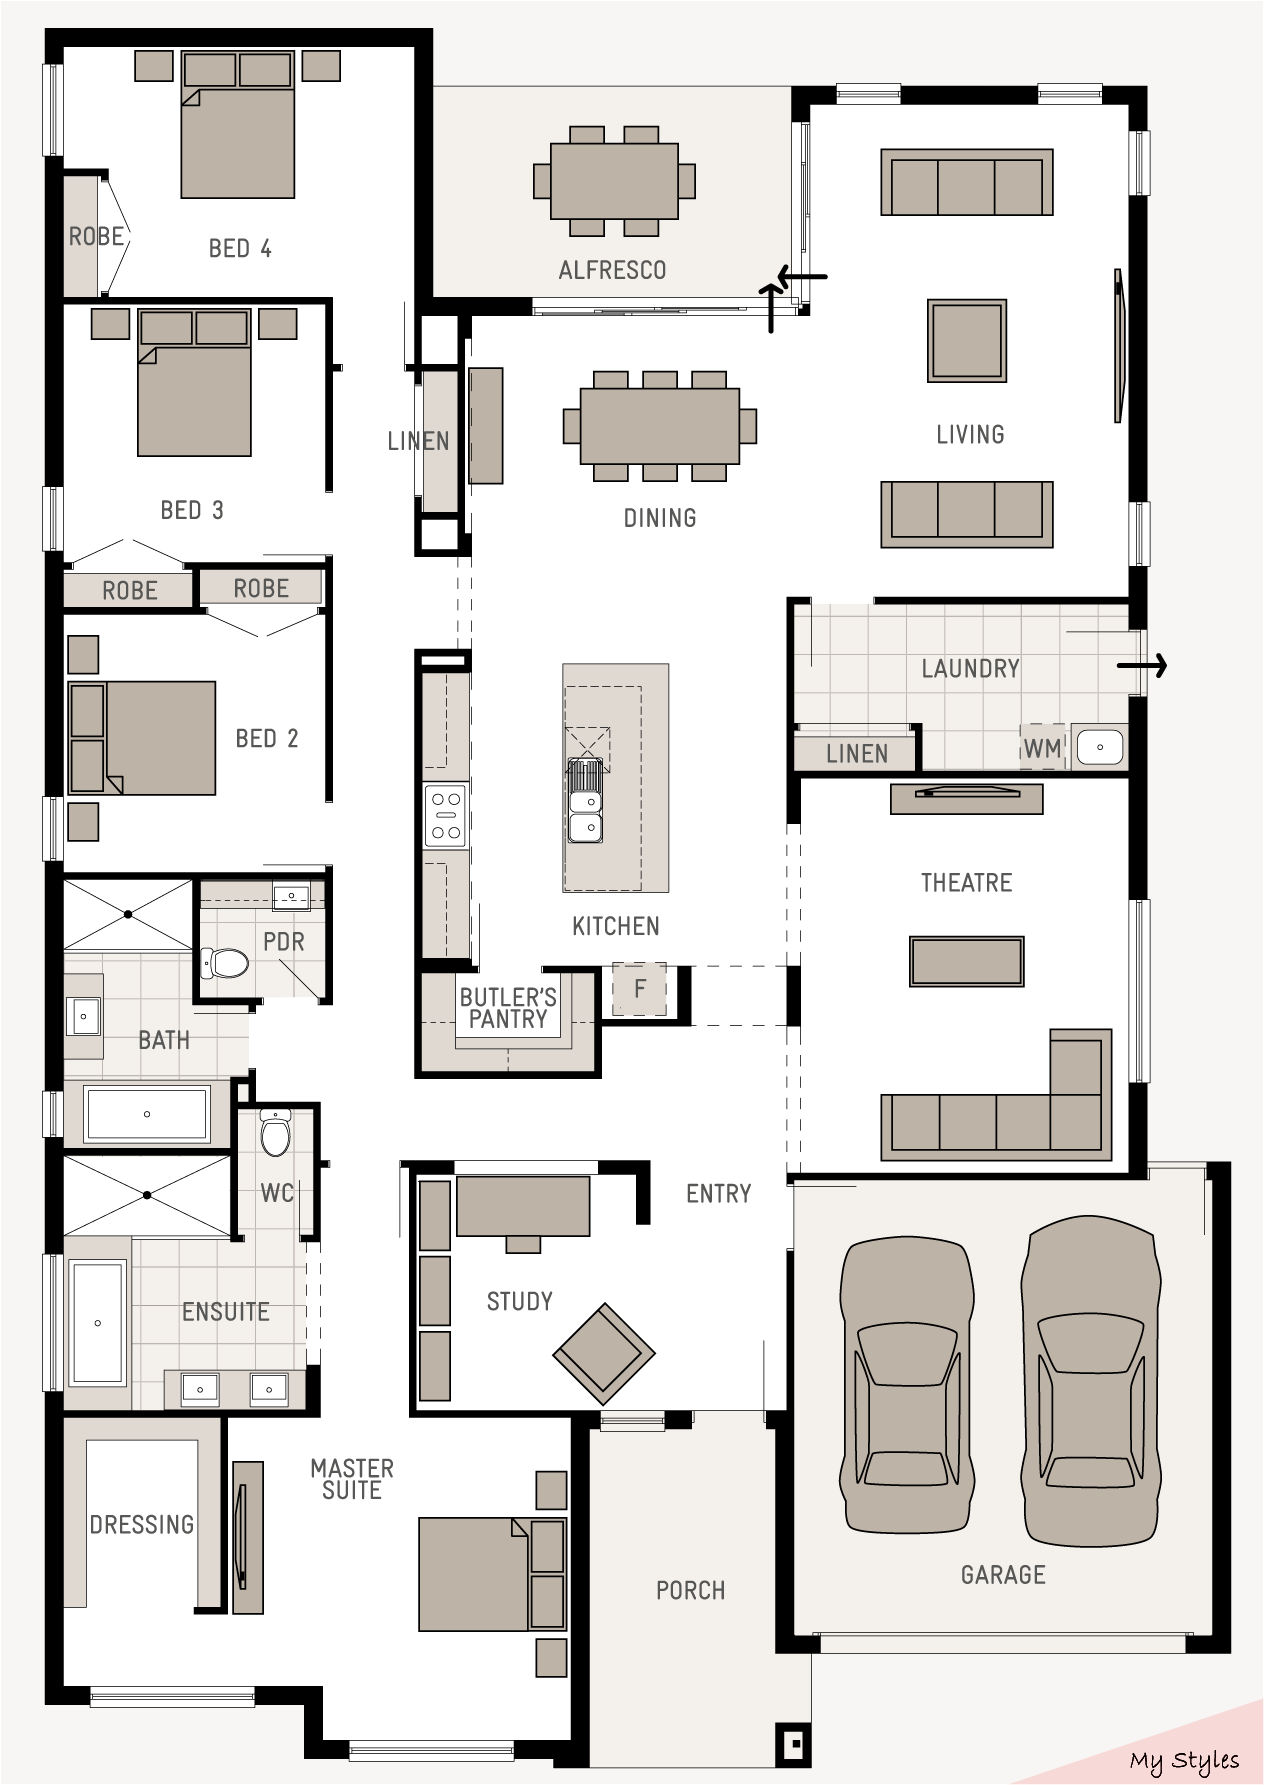 Floor Plan Friday Good Use Of Space Dream House Builder Dream House Bui Dream House Builder House Plans House Blueprints Dream House Plans